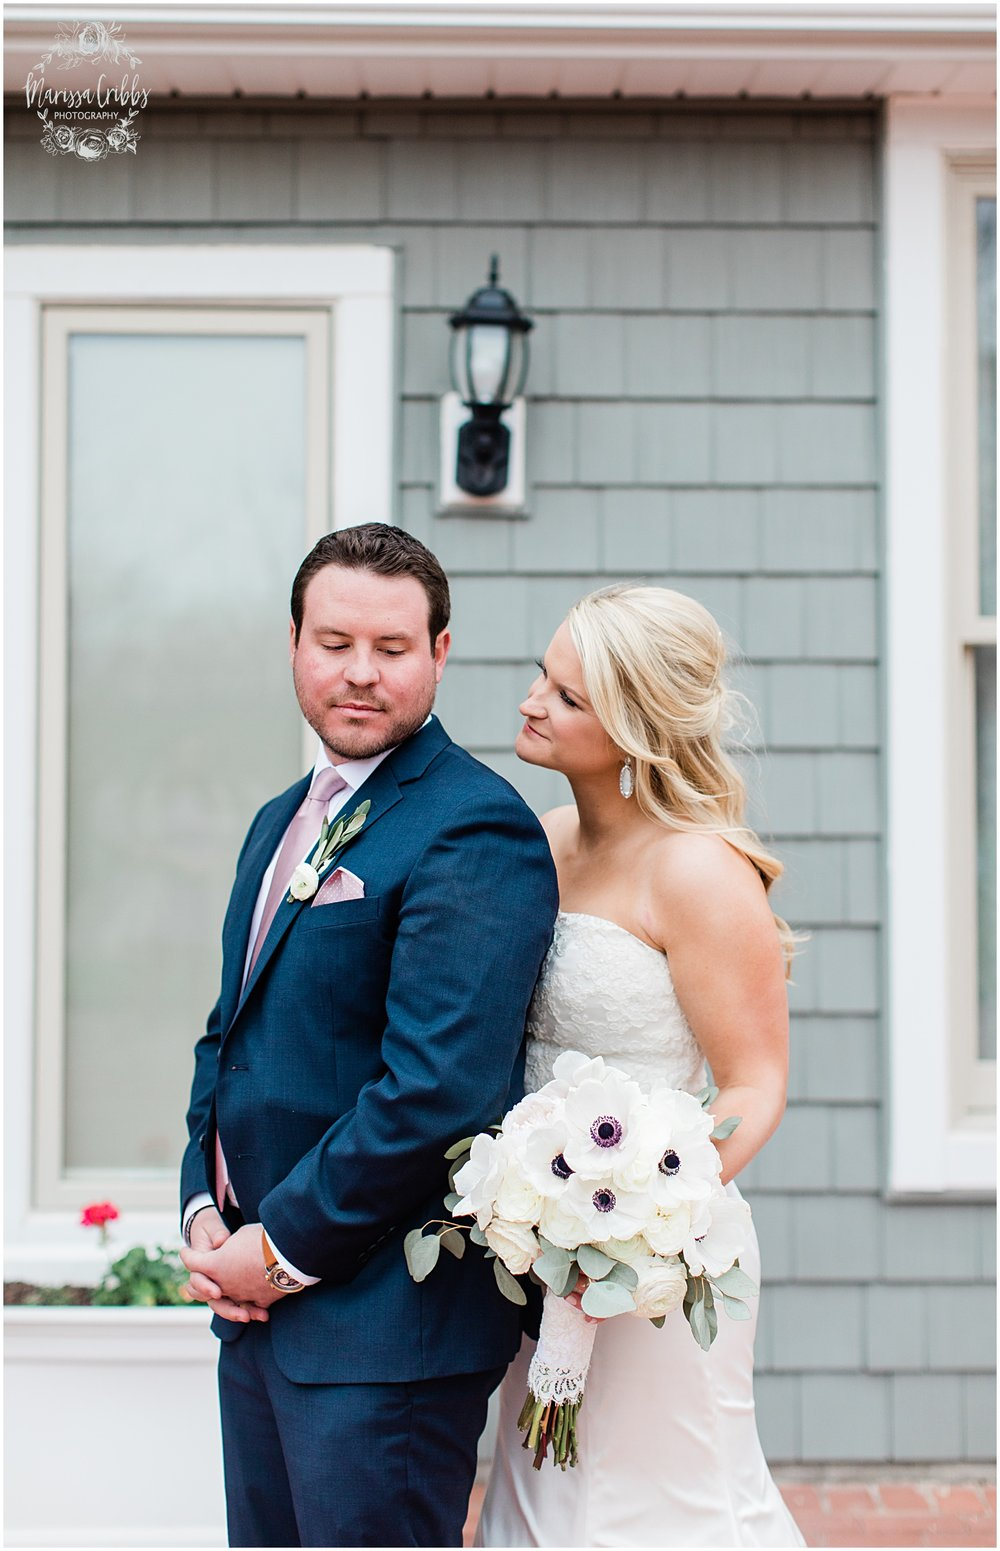 TILSON WEDDING | THE LEGACY AT GREEN HILLS | SIMPLE ELEGANCE | MARISSA CRIBBS PHOTOGRAPHY_4741.jpg